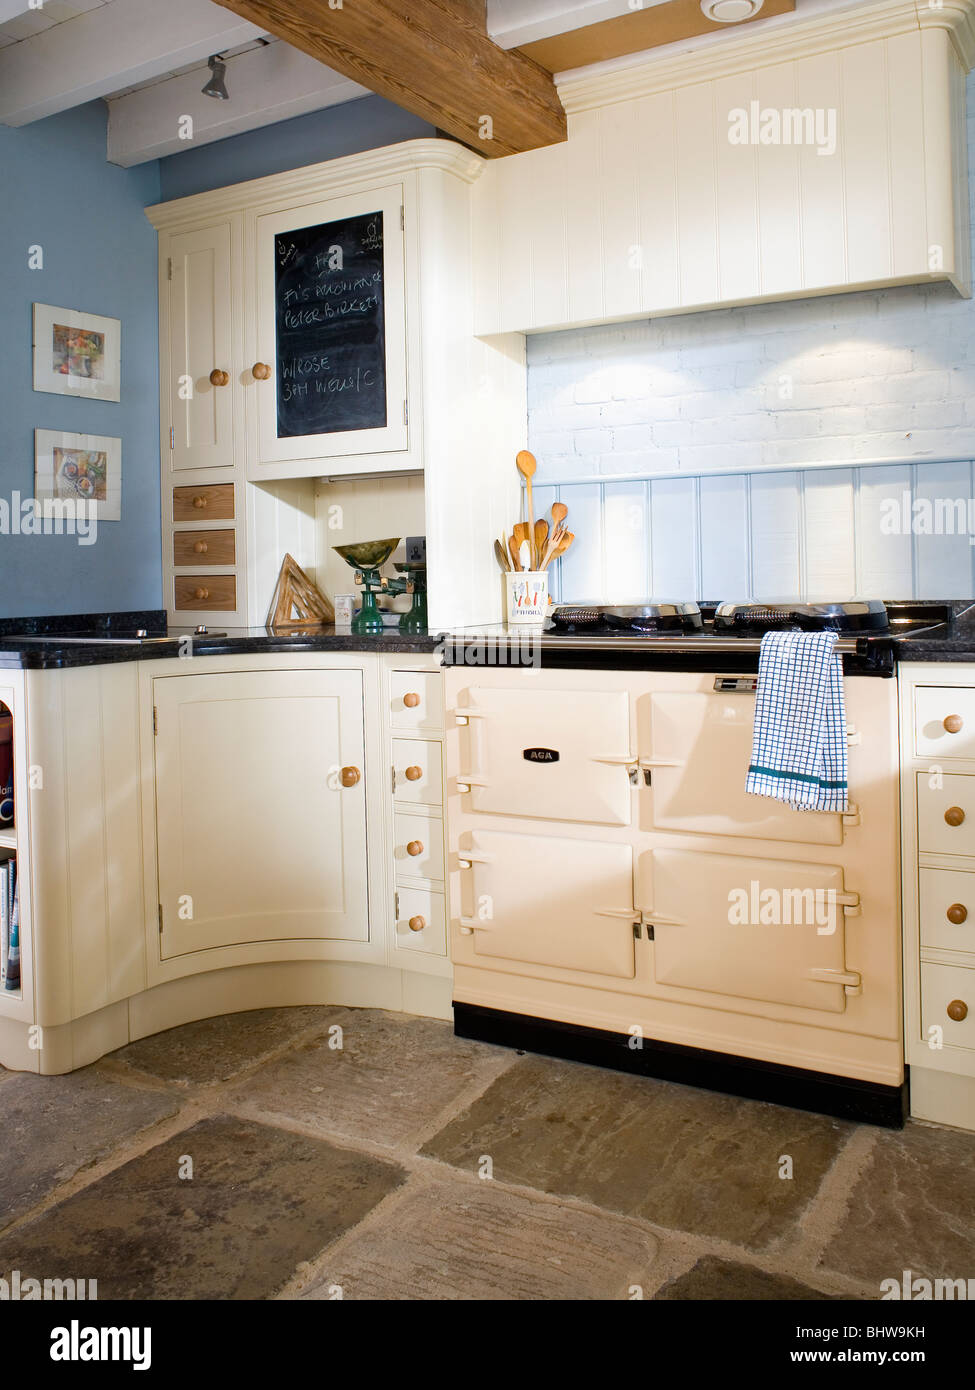 Blue Country Kitchens. Cream Aga Oven In Pastel Blue Country Kitchen With  Flagstone Floor And